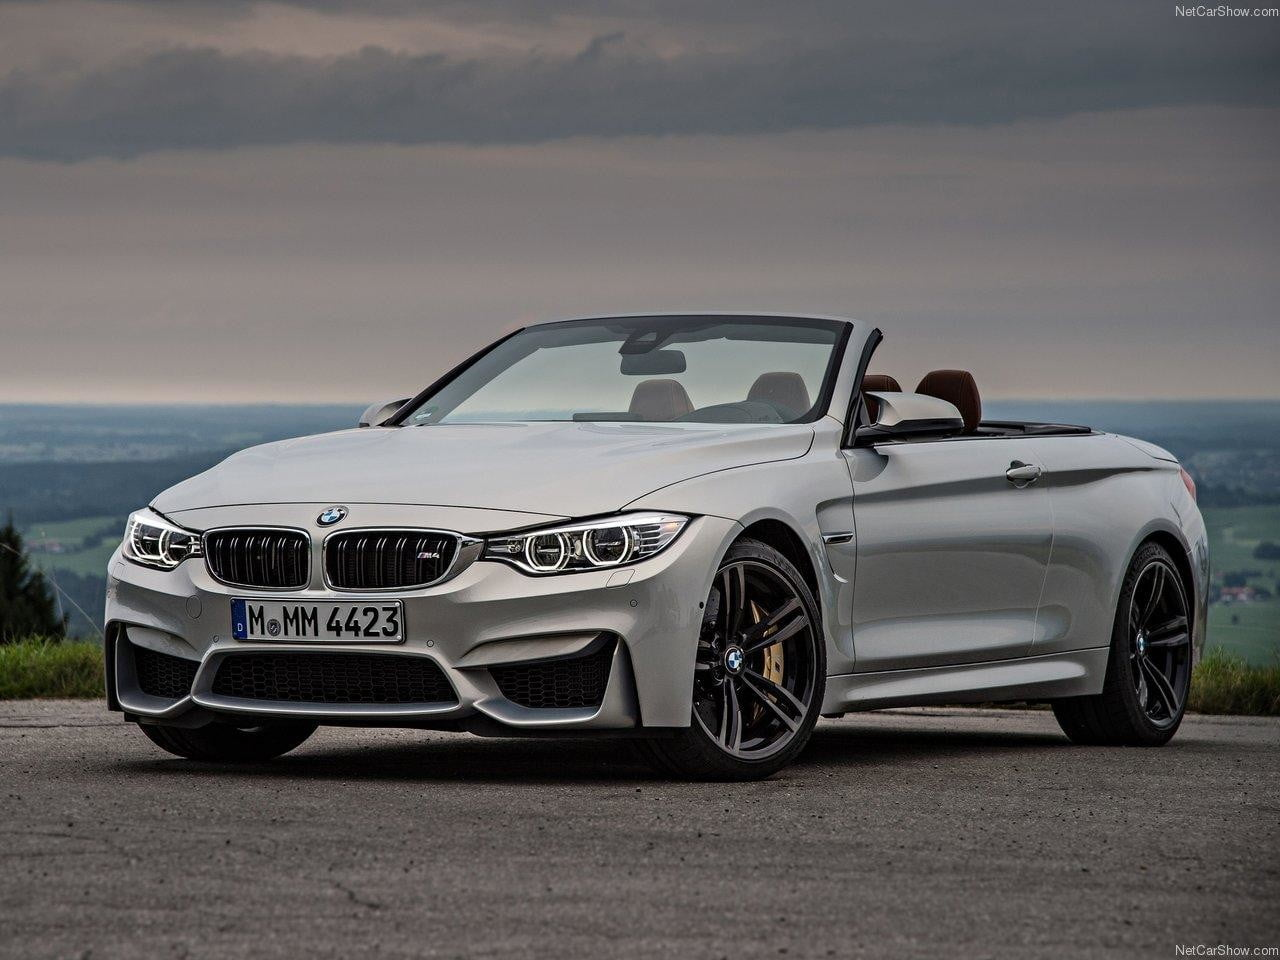 Coupe Series how much does a bmw m3 cost BMW's M3 and M4 get a price increase for the 2016 model year, more ...